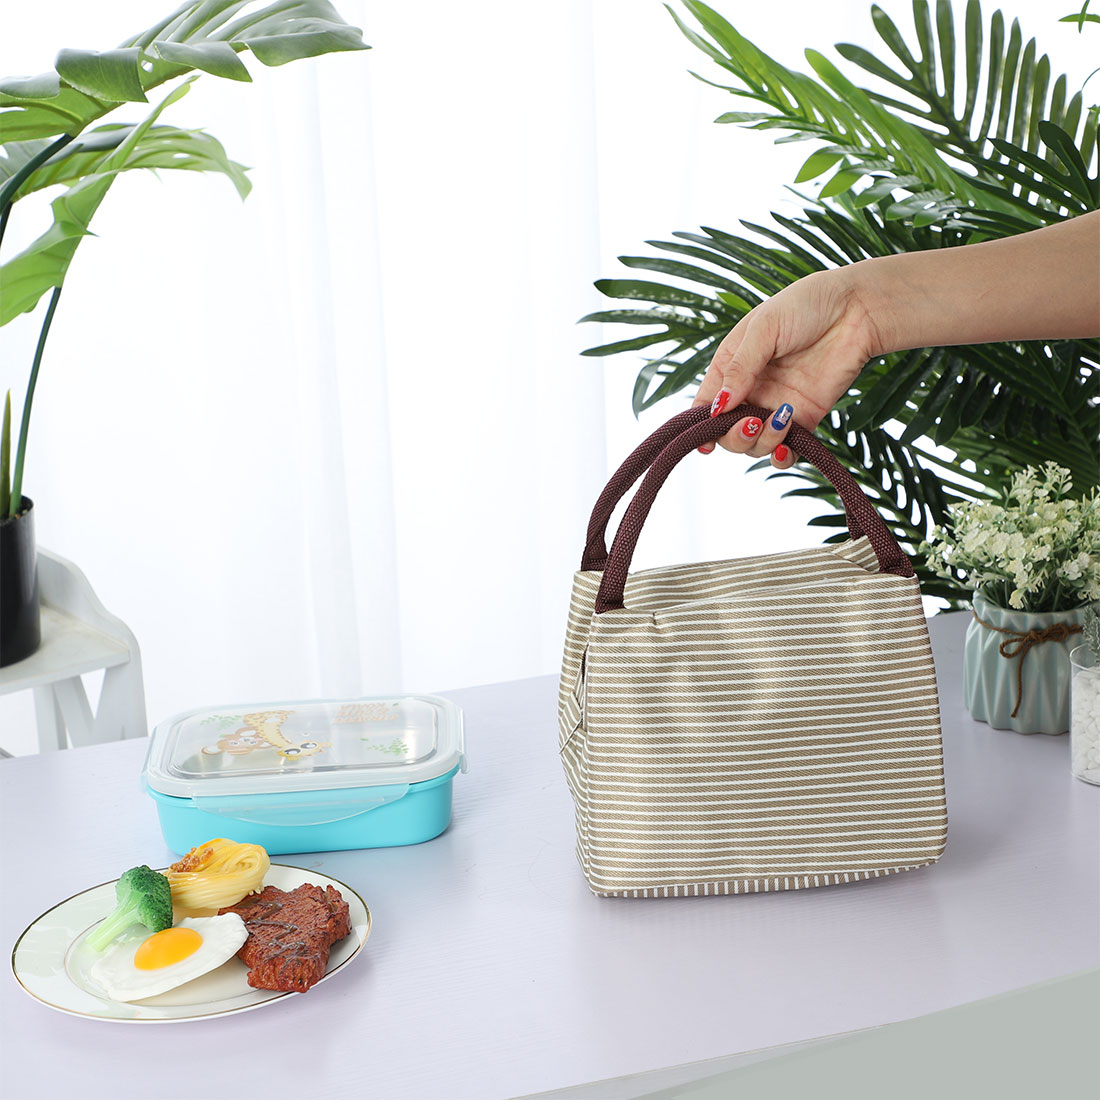 Lunch Bag Warmer Cooler Travel Food Box Tote Carry Insulated Bags Khaki+White - image 6 de 7